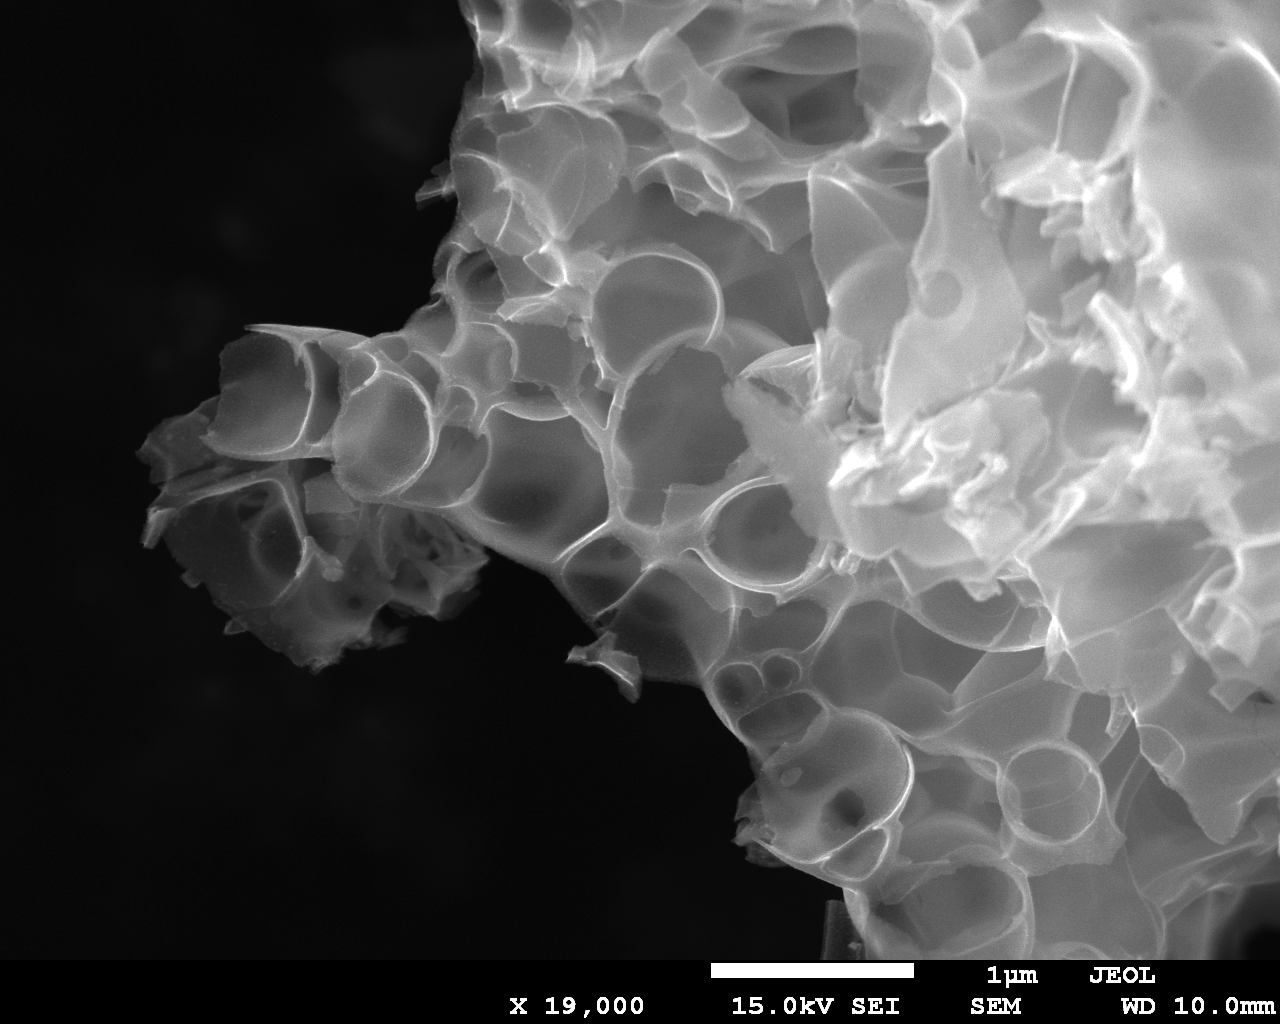 SEM image of one of the ORR catalysts. Image courtesy of Zoe Schnepp